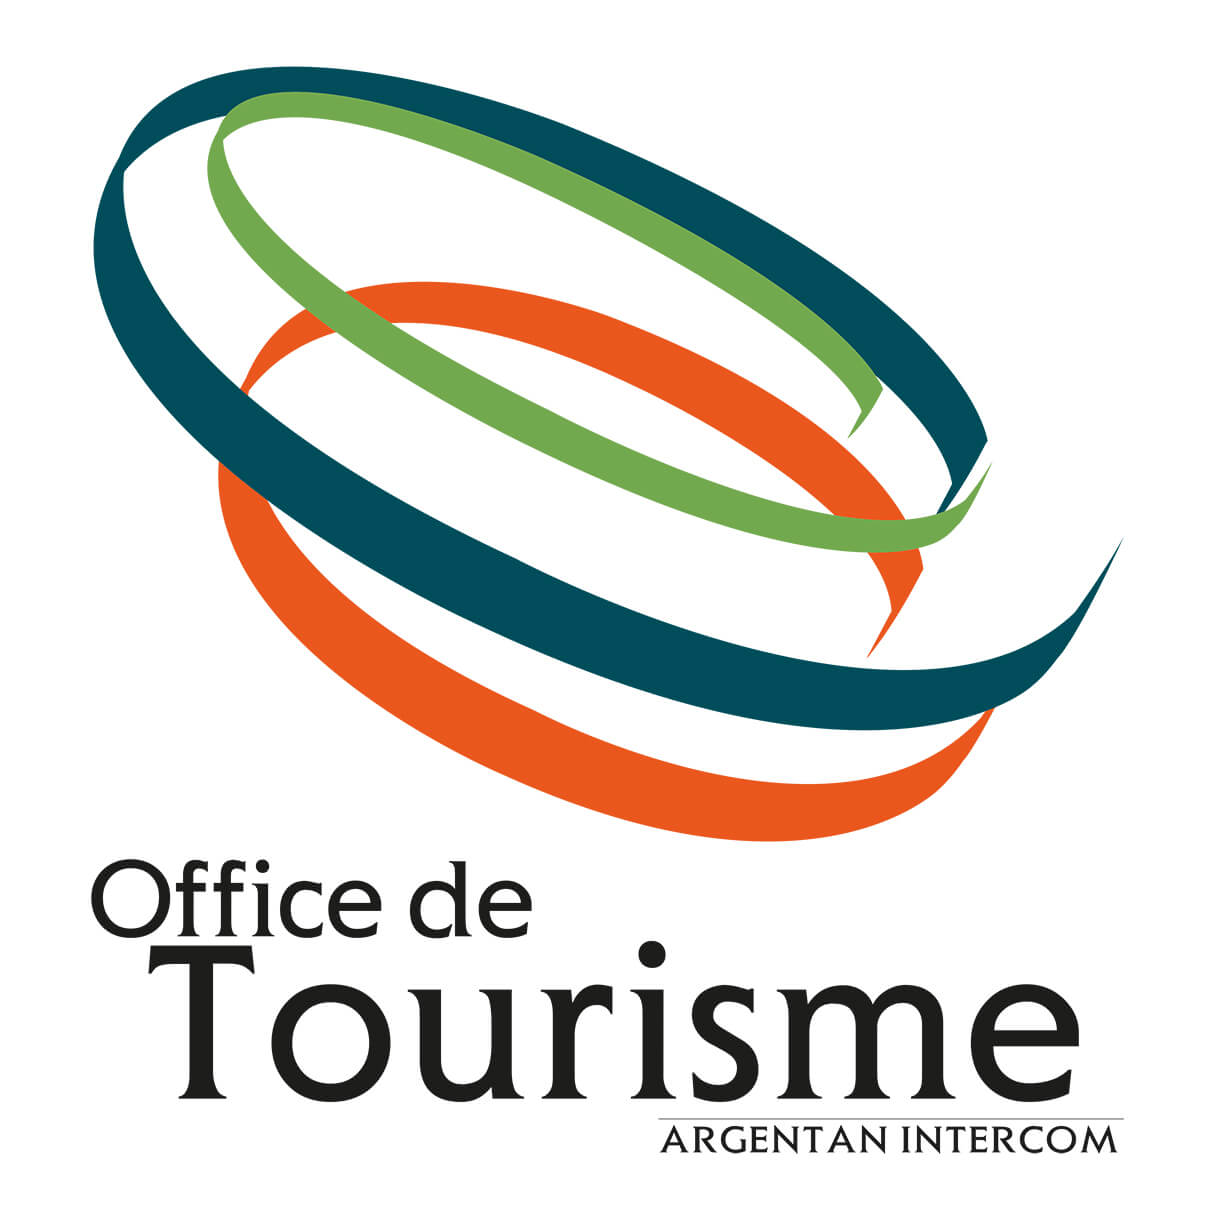 Site Internet de l'Office de Tourisme d'Argentan Intercom